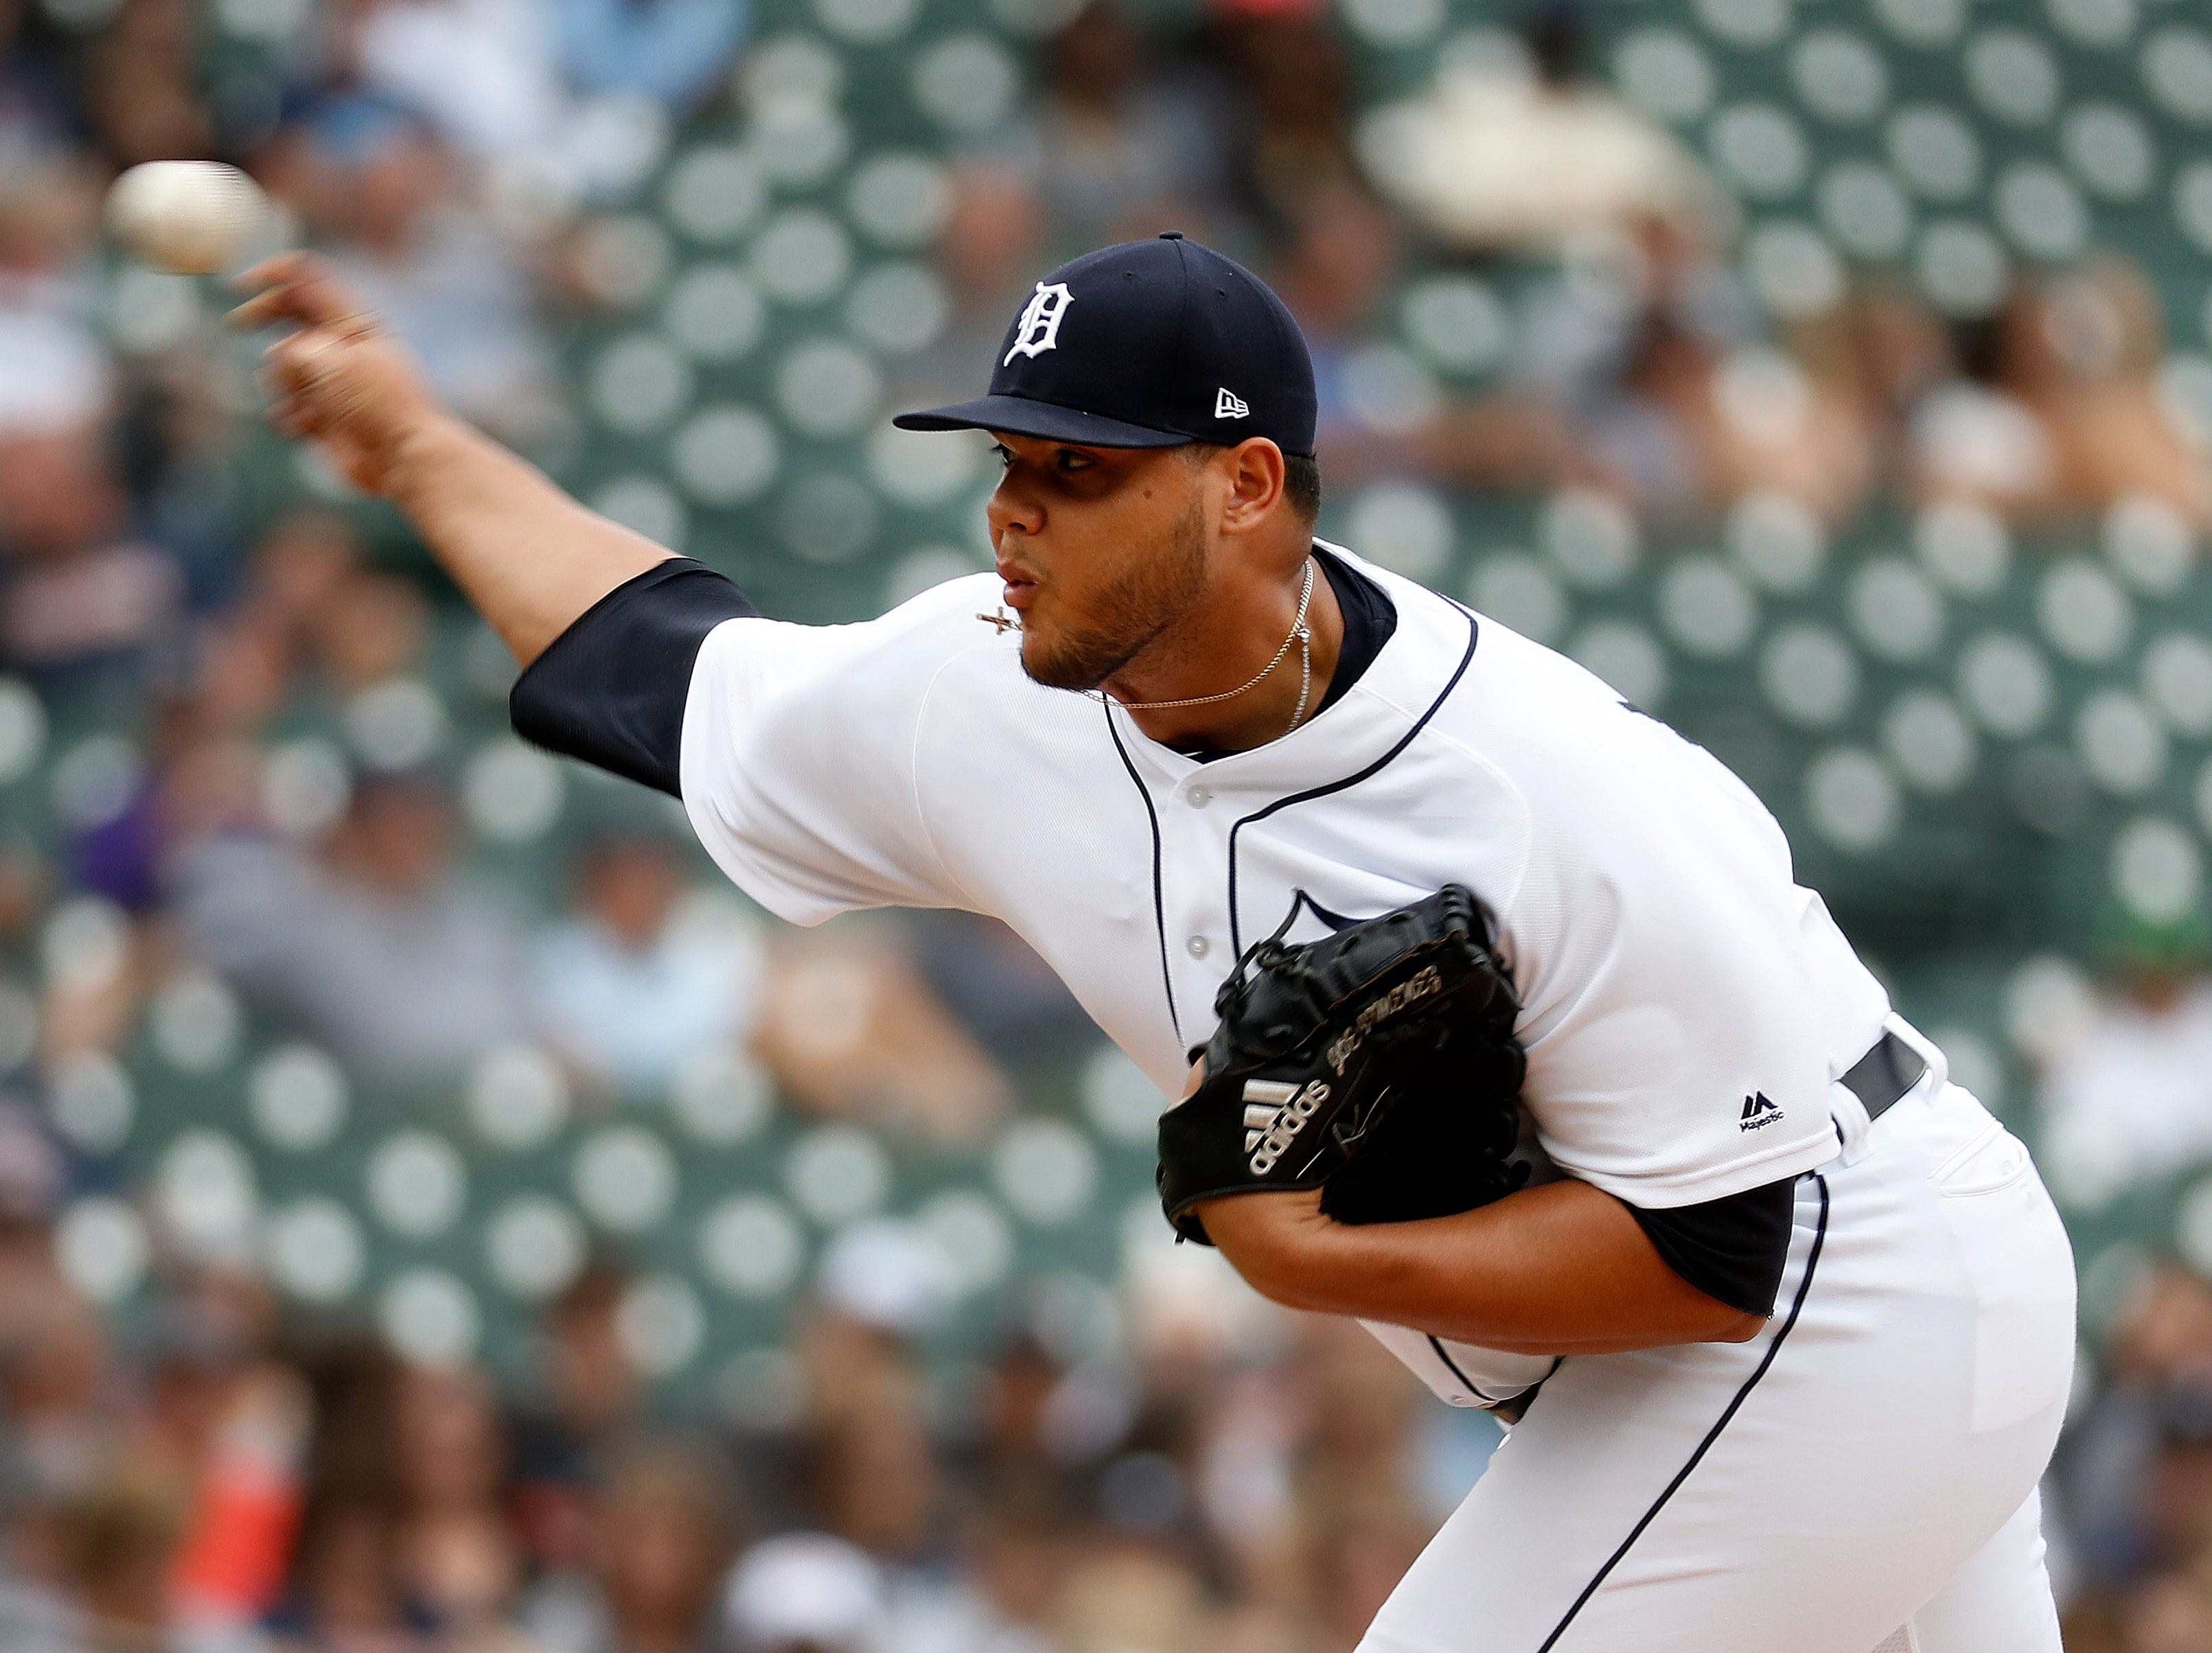 Tigers relief pitcher Joe Jimenez throws against the Cincinnati Reds in the eighth inning.